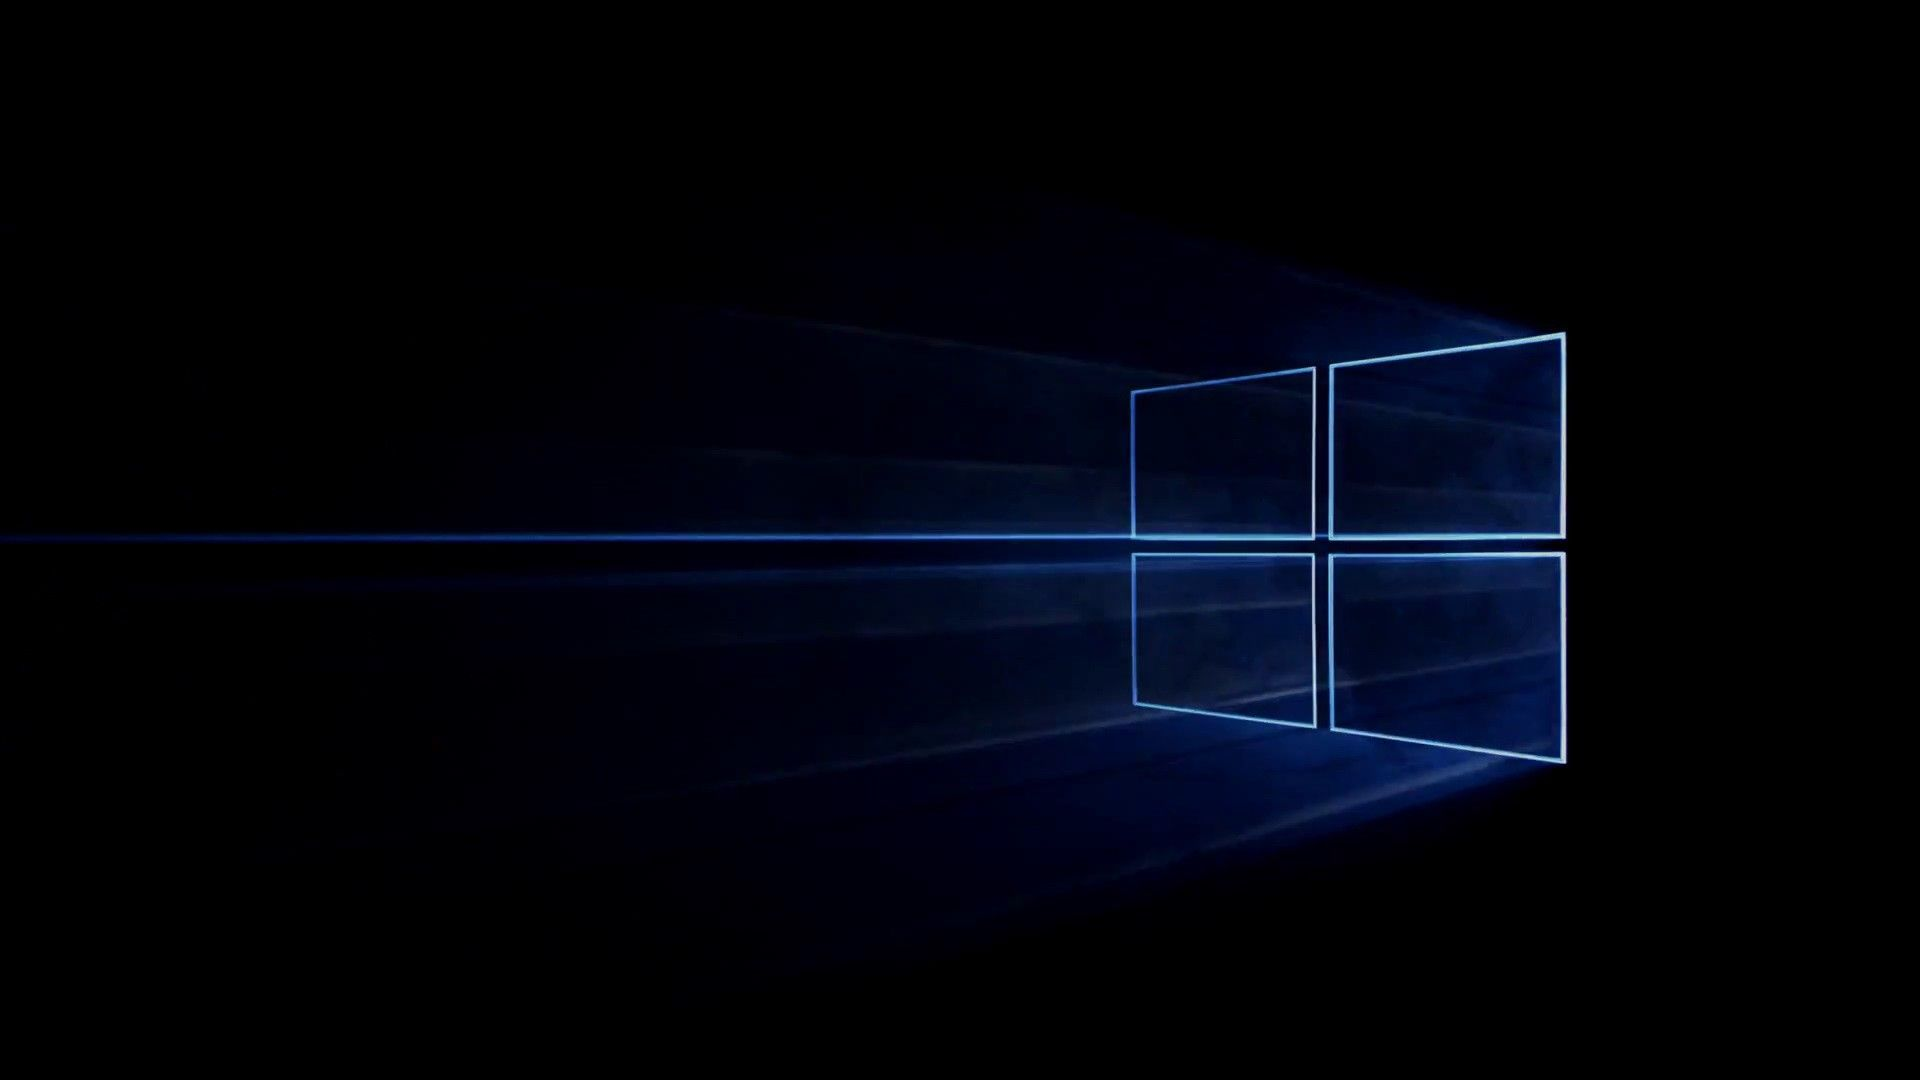 Microsoft Introduces Three New Wallpapers In This Build Wallpaper Windows 10 Windows Desktop Wallpaper Windows 10 Logo